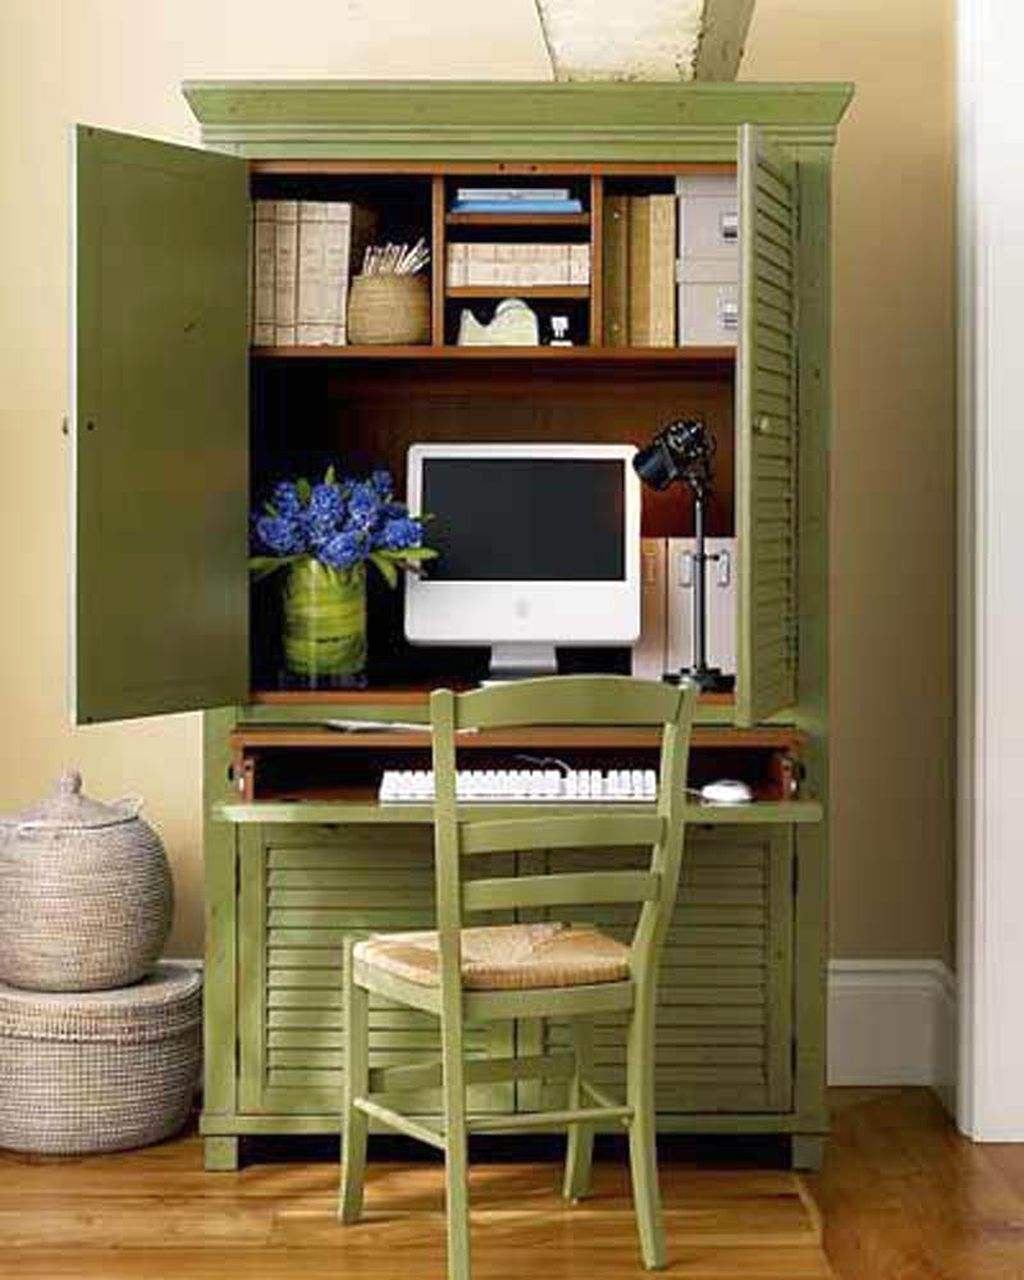 Small Office Den Decorating Ideas: Green Cupboard Home Office Design Ideas For Small Spaces